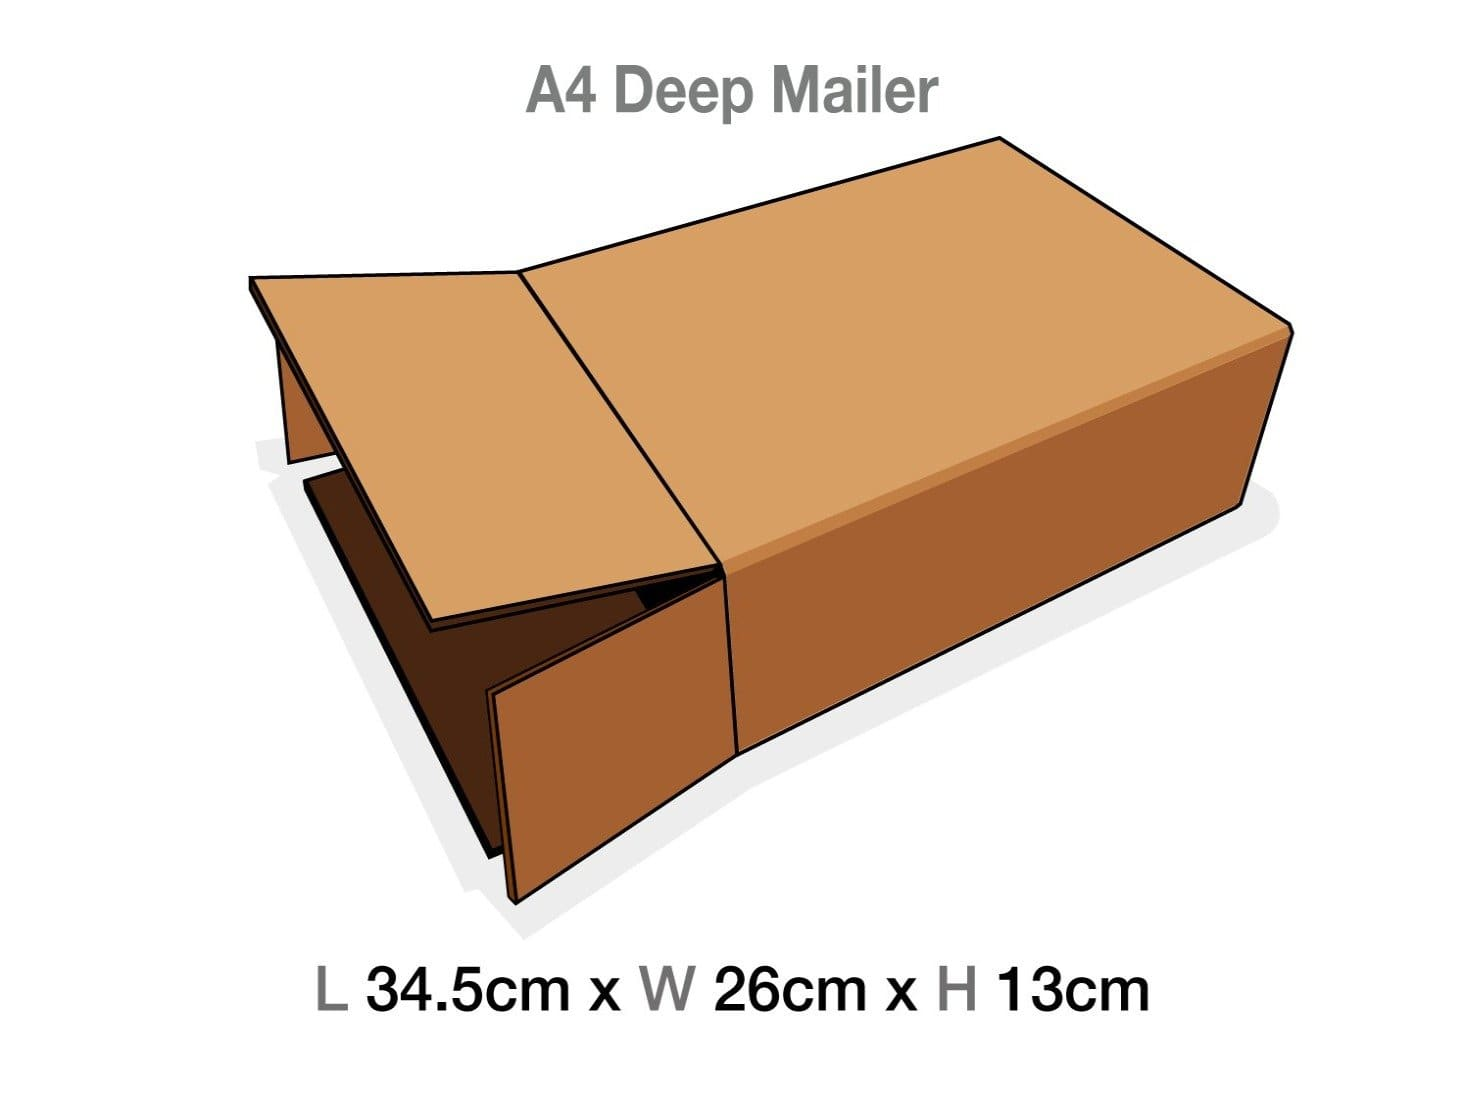 A4 Deep Gift Box Mailing Carton